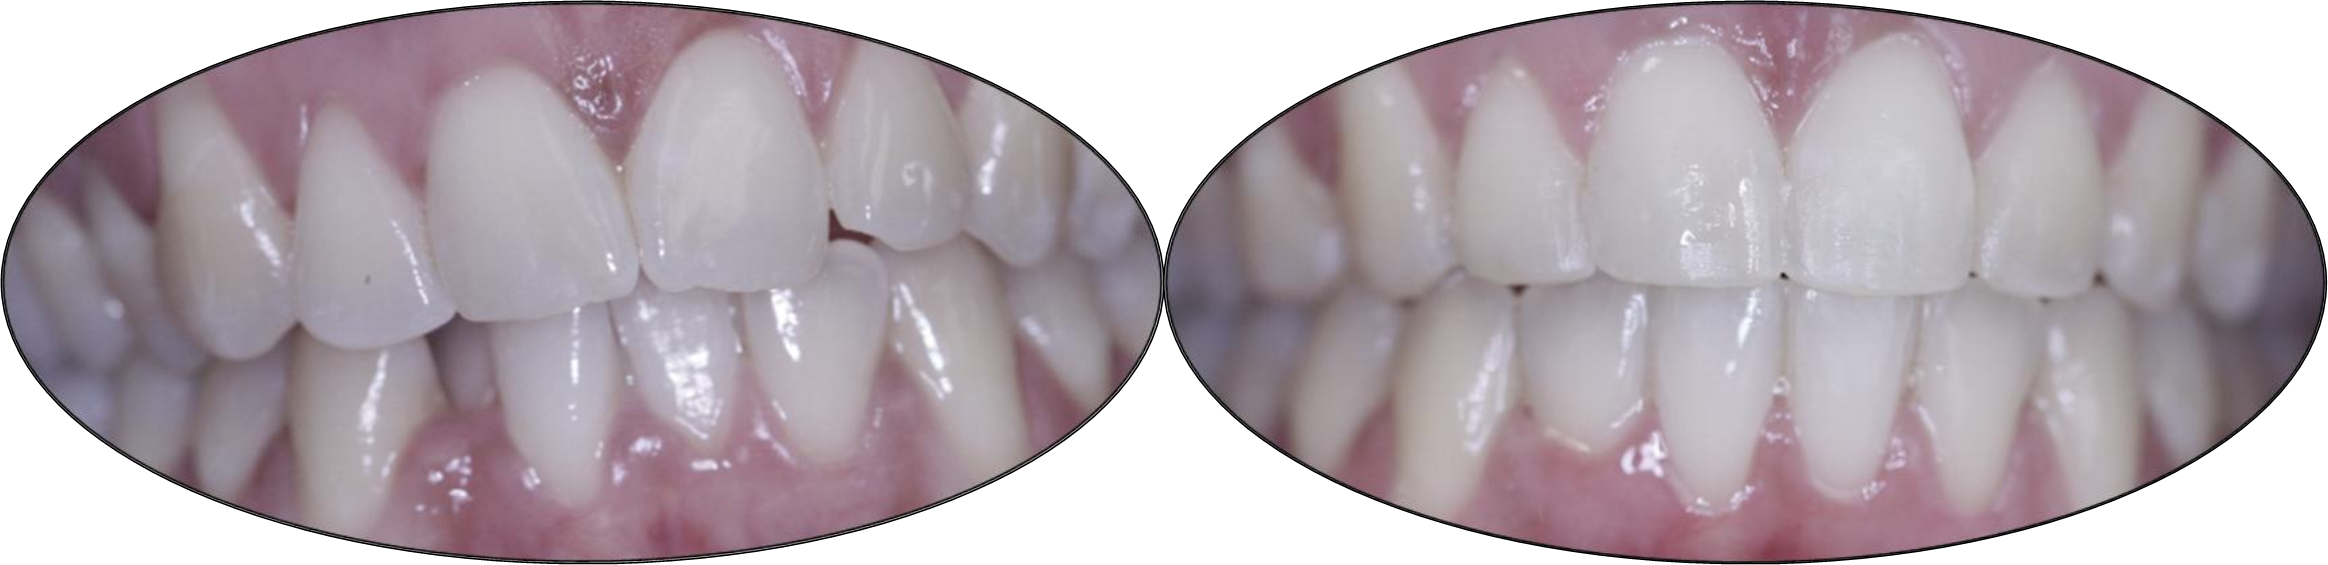 Smile gallery images, before and after orthodontics, patient two